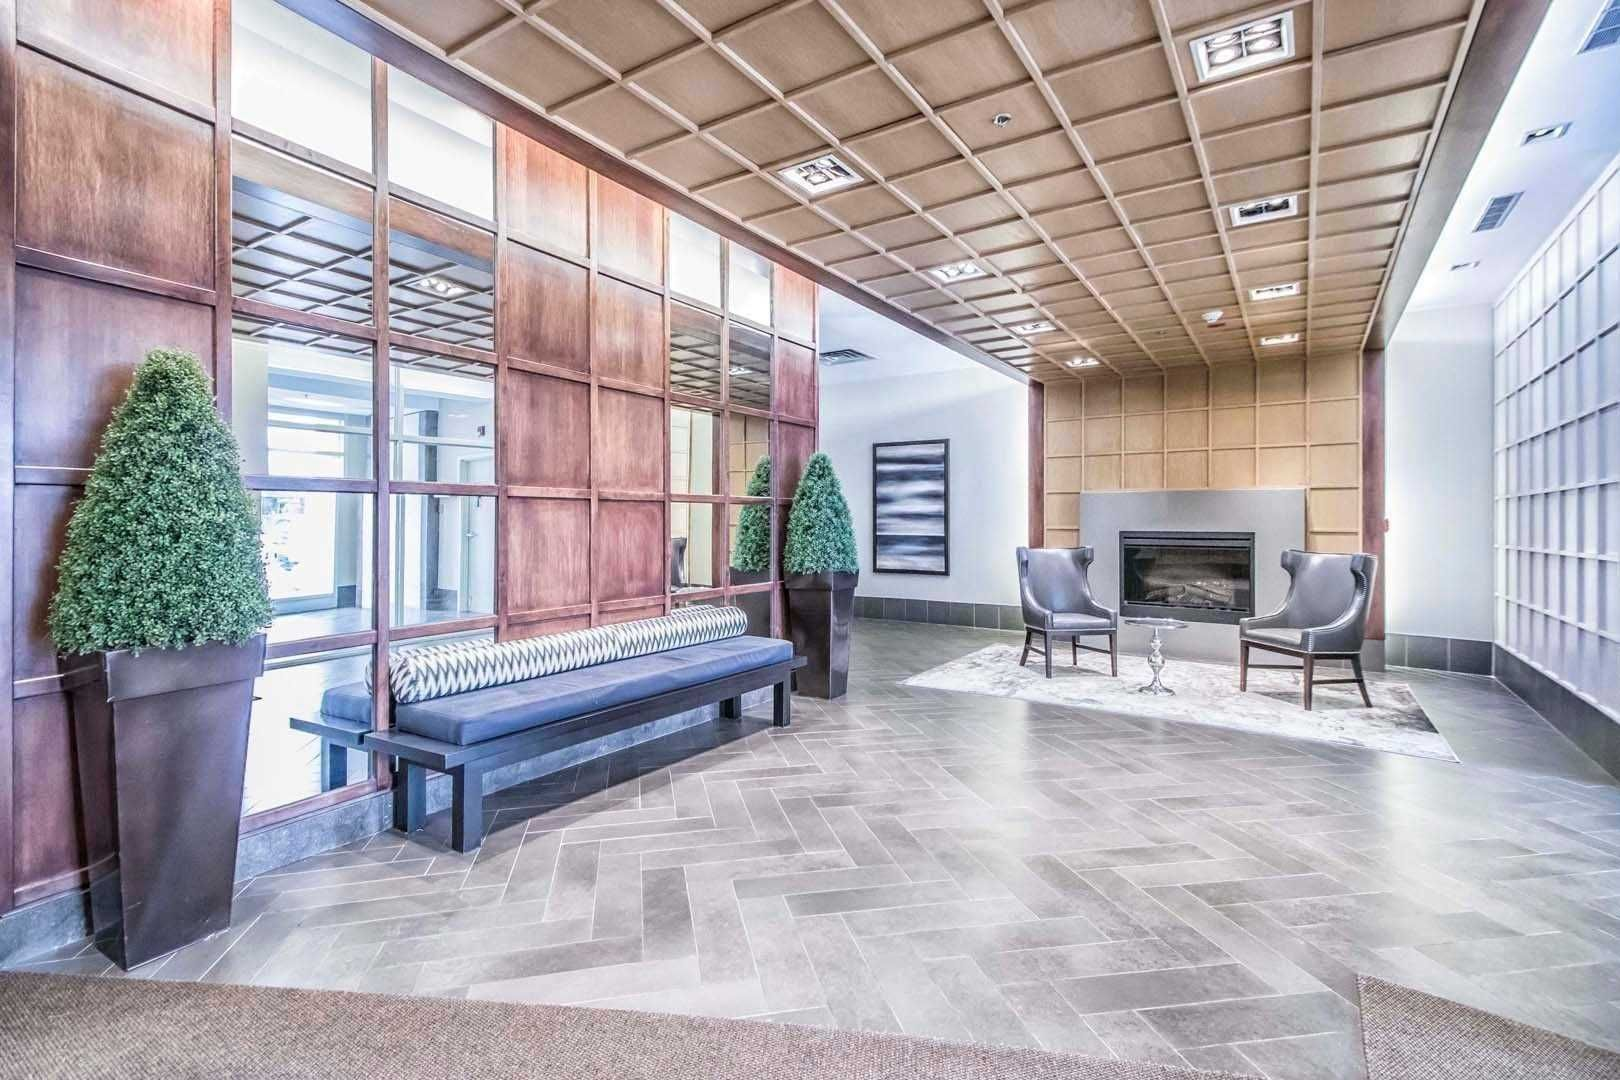 3391 Bloor St W, unit 512 for rent in Toronto - image #2